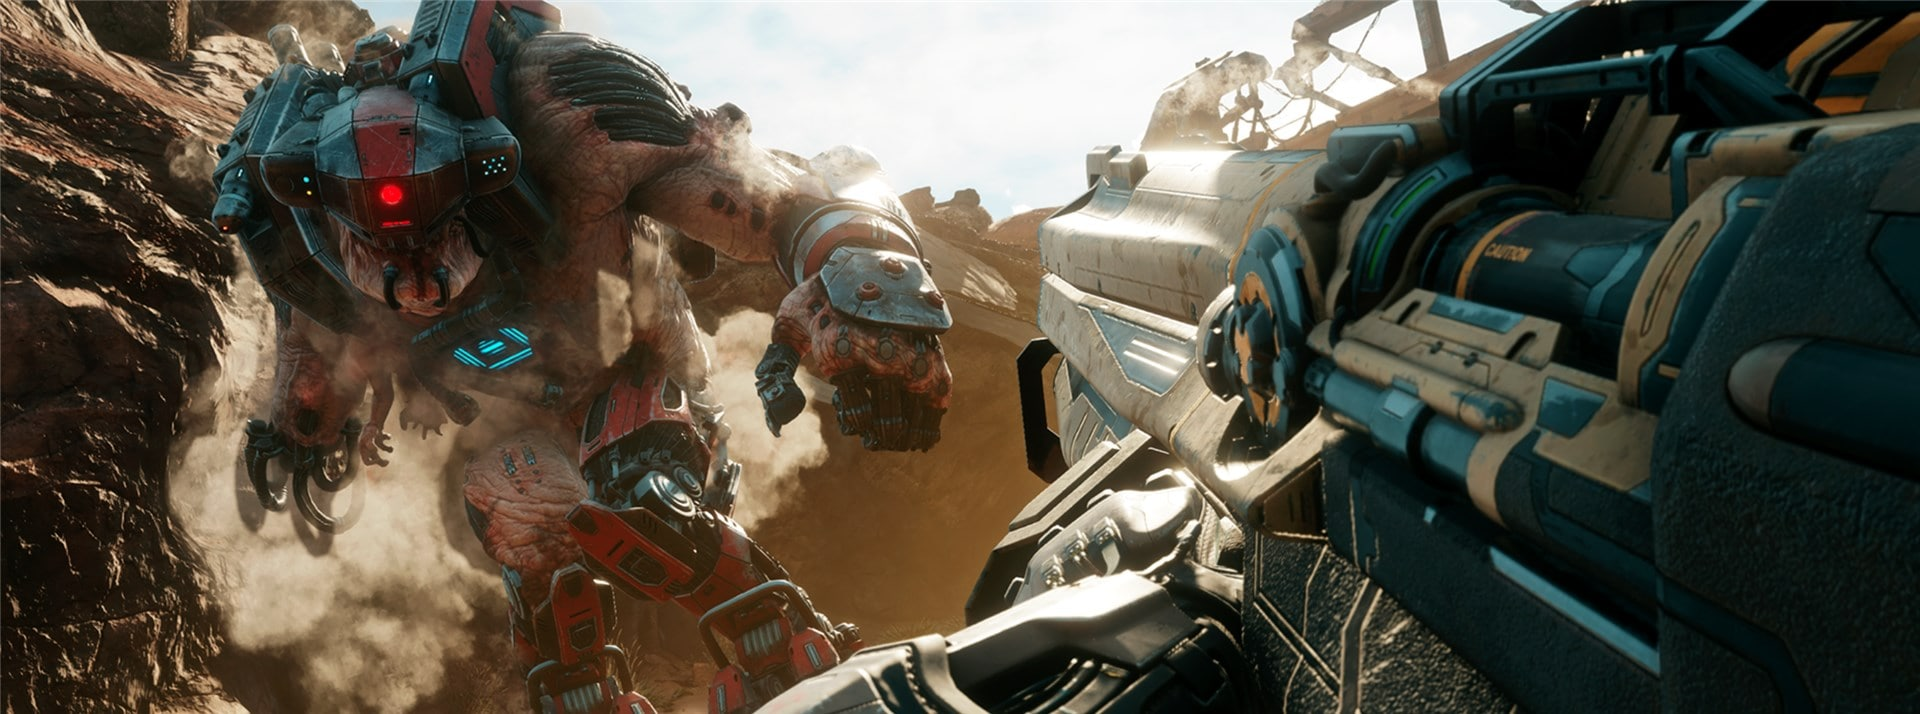 RAGE 2 is currently free at Epic Games Store